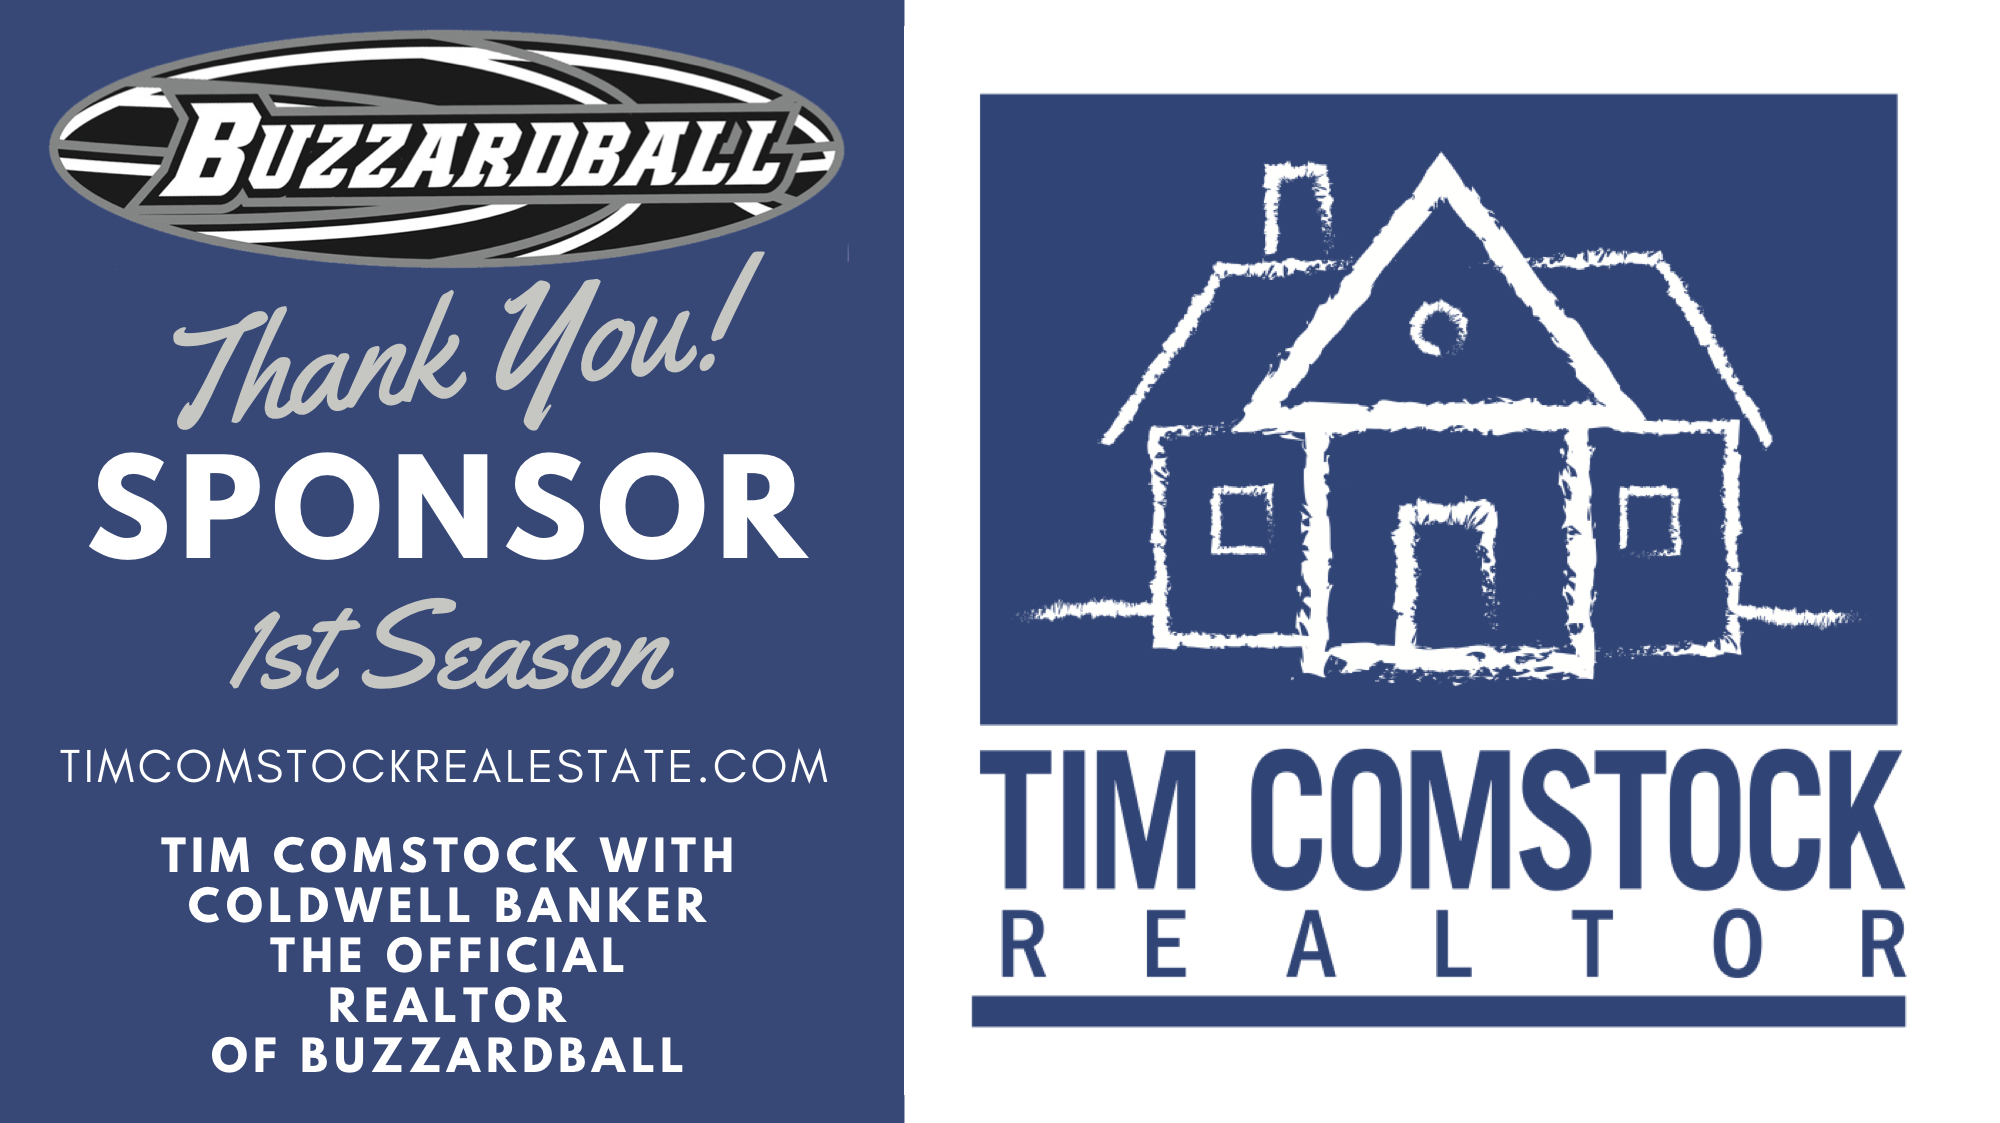 I would like to welcome Tim Comstock as a NEW SPONSOR for the upcoming Buzzardball Winter League season. Tim was born and raised in Sacramento and is a graduate of Cal Berkeley. In 2015, Tim became a full-time realtor. His 'referral only' model of business has helped Tim achieve great success in the real estate market. He prides himself on communication, integrity, and focus with the recognition that every client is unique. Buzzardball now has an official realtor.    TIM COMSTOCK REAL ESTATE | Specializing in residential and investment property sales, Tim Comstock with Coldwell Banker is your local realtor and a proud sponsor of Buzzardball!